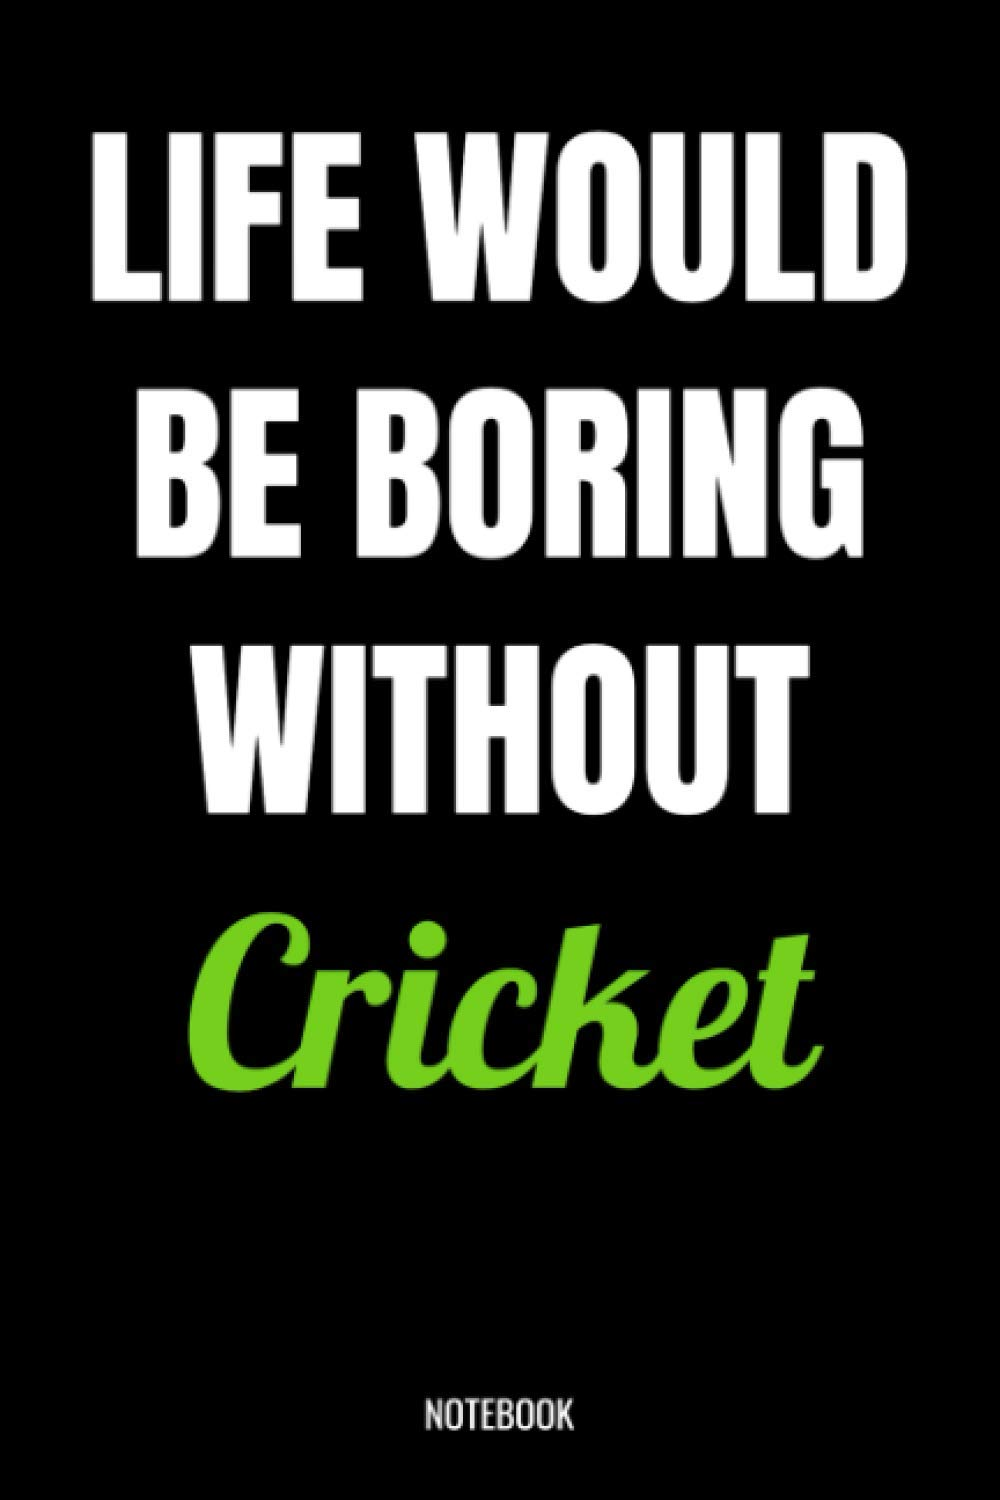 Life Would Be Boring Without Cricket Cricket Gifts For Women Men Teens Girls And Kids Funny Quote Blank Lined 104 Pages Journal Birthday Gift Cute Gift Ideas Cricket Gift And Notebook